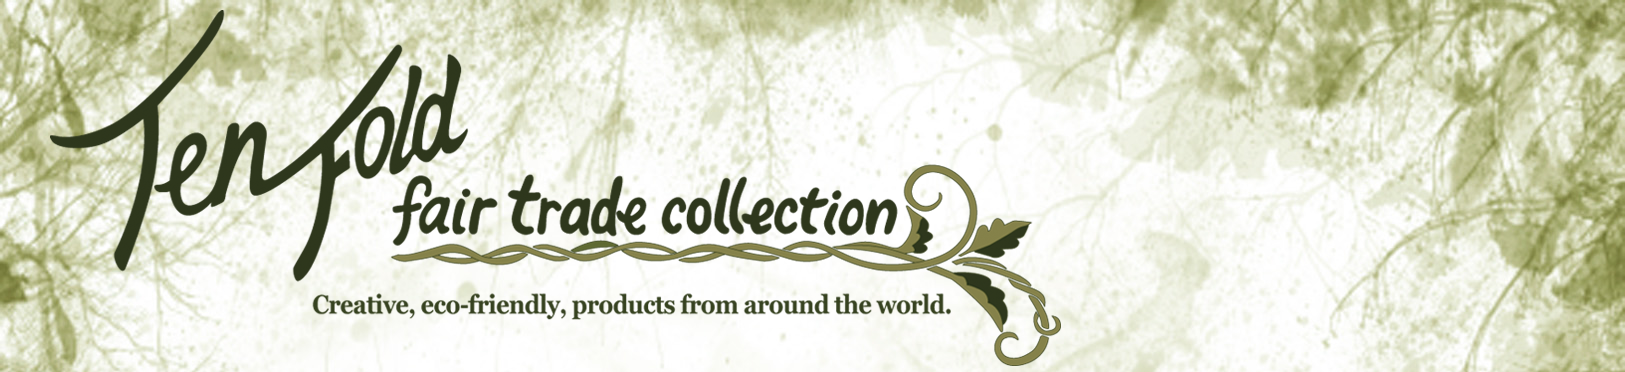 Tenfold Fair Trade Collection logo